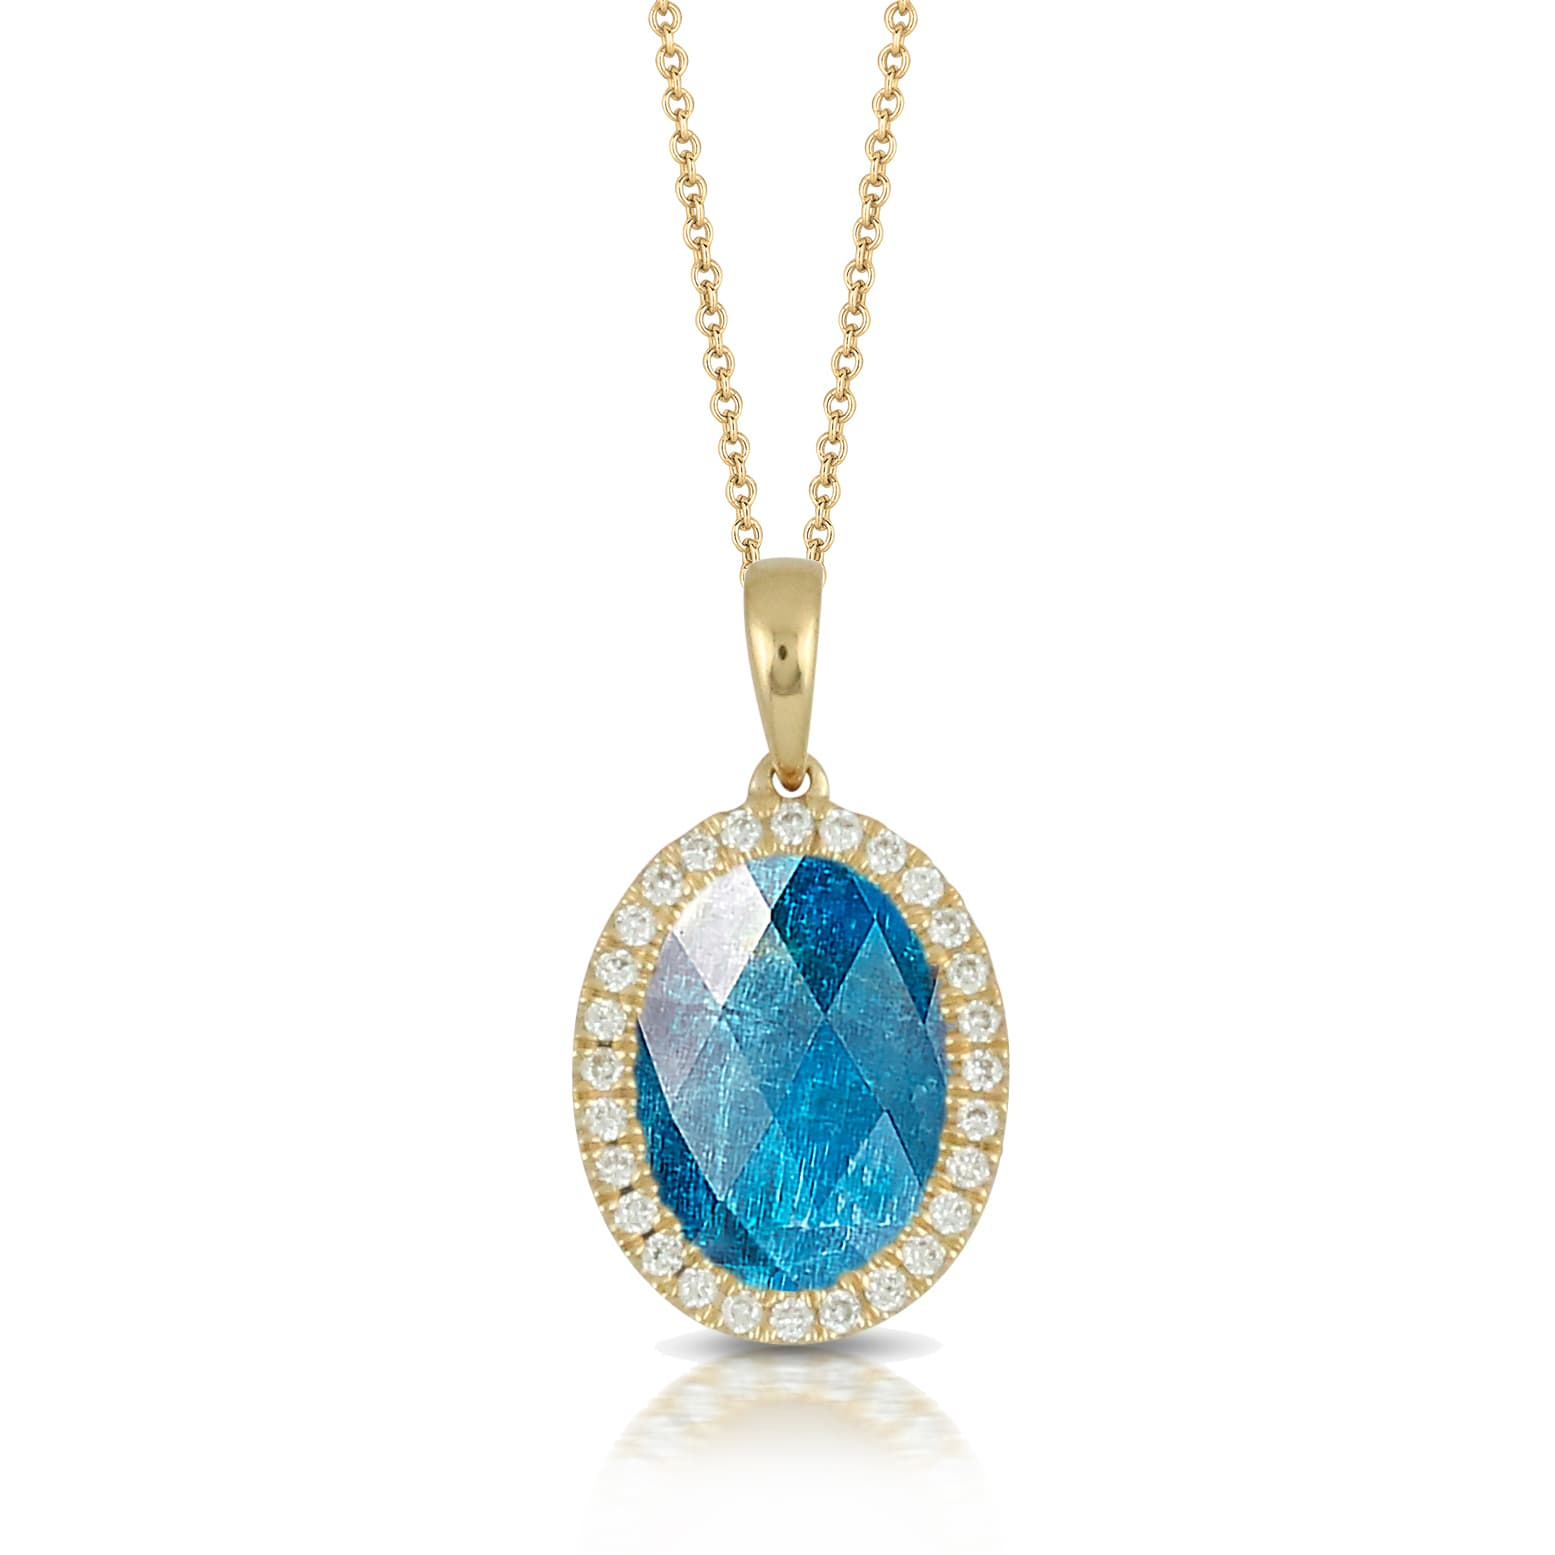 18K YELLOW GOLD DIAMOND PENDANT WITH CLEAR QUARTZ OVER APATITE